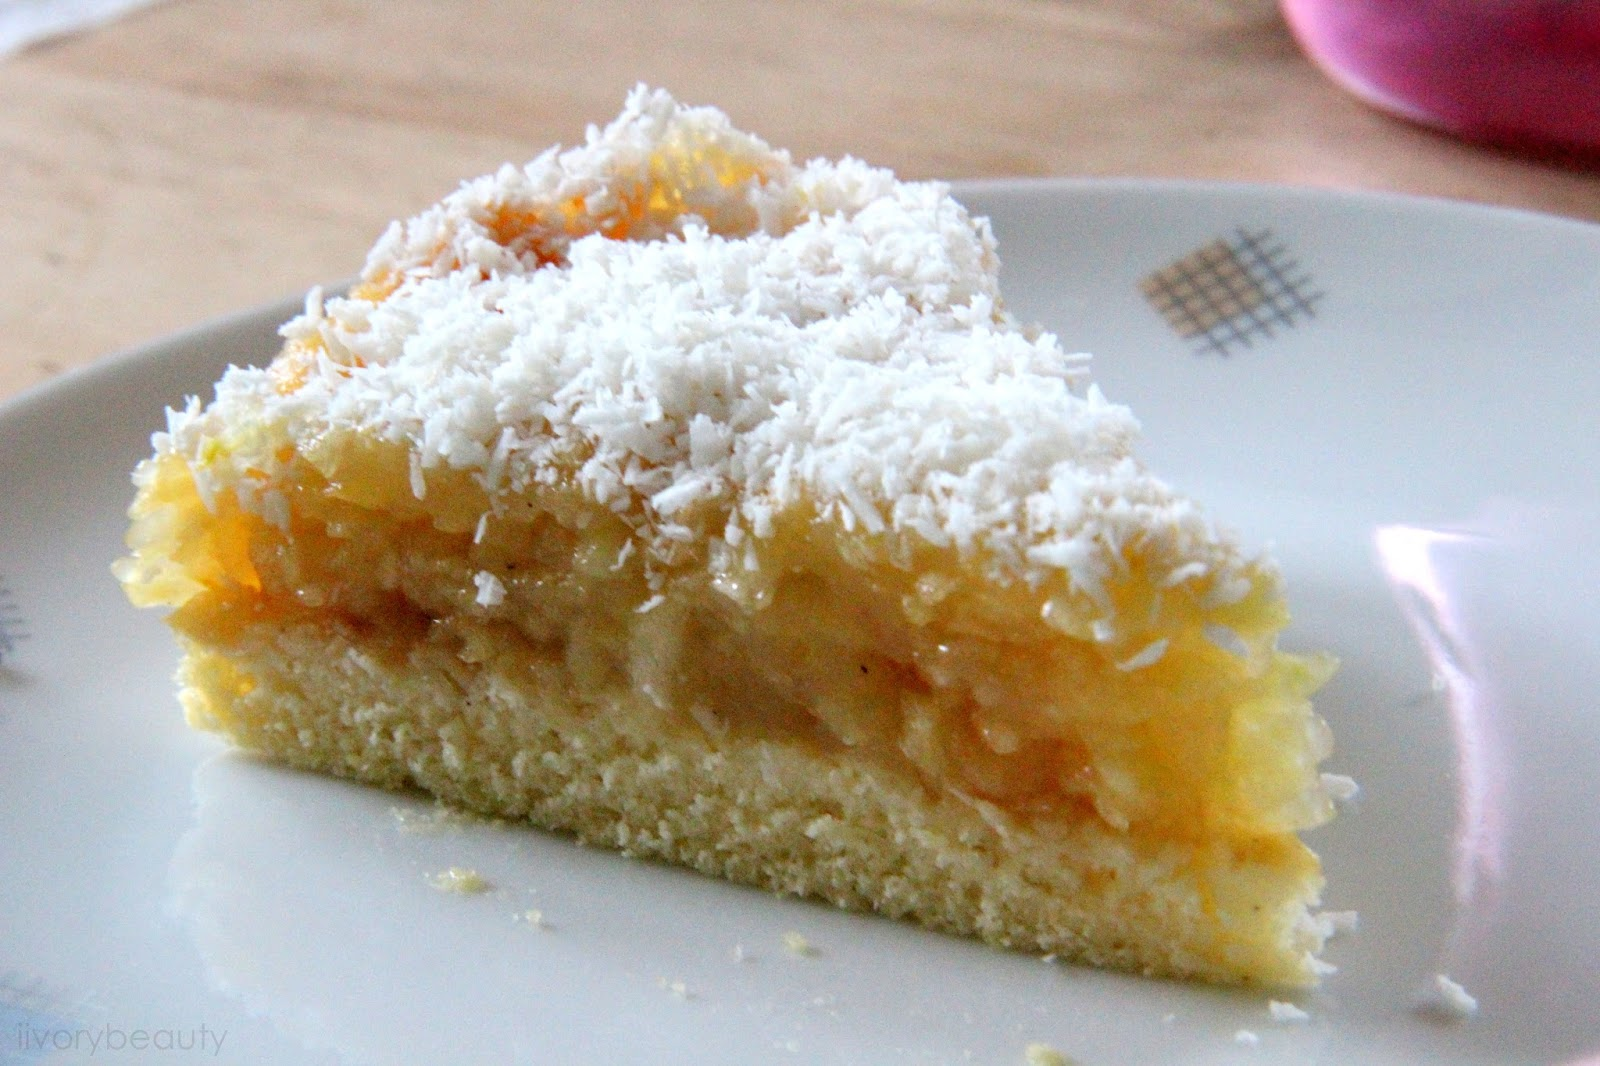 Apfel Vanille Kuchen Recipe For Summer Ivory Beauty